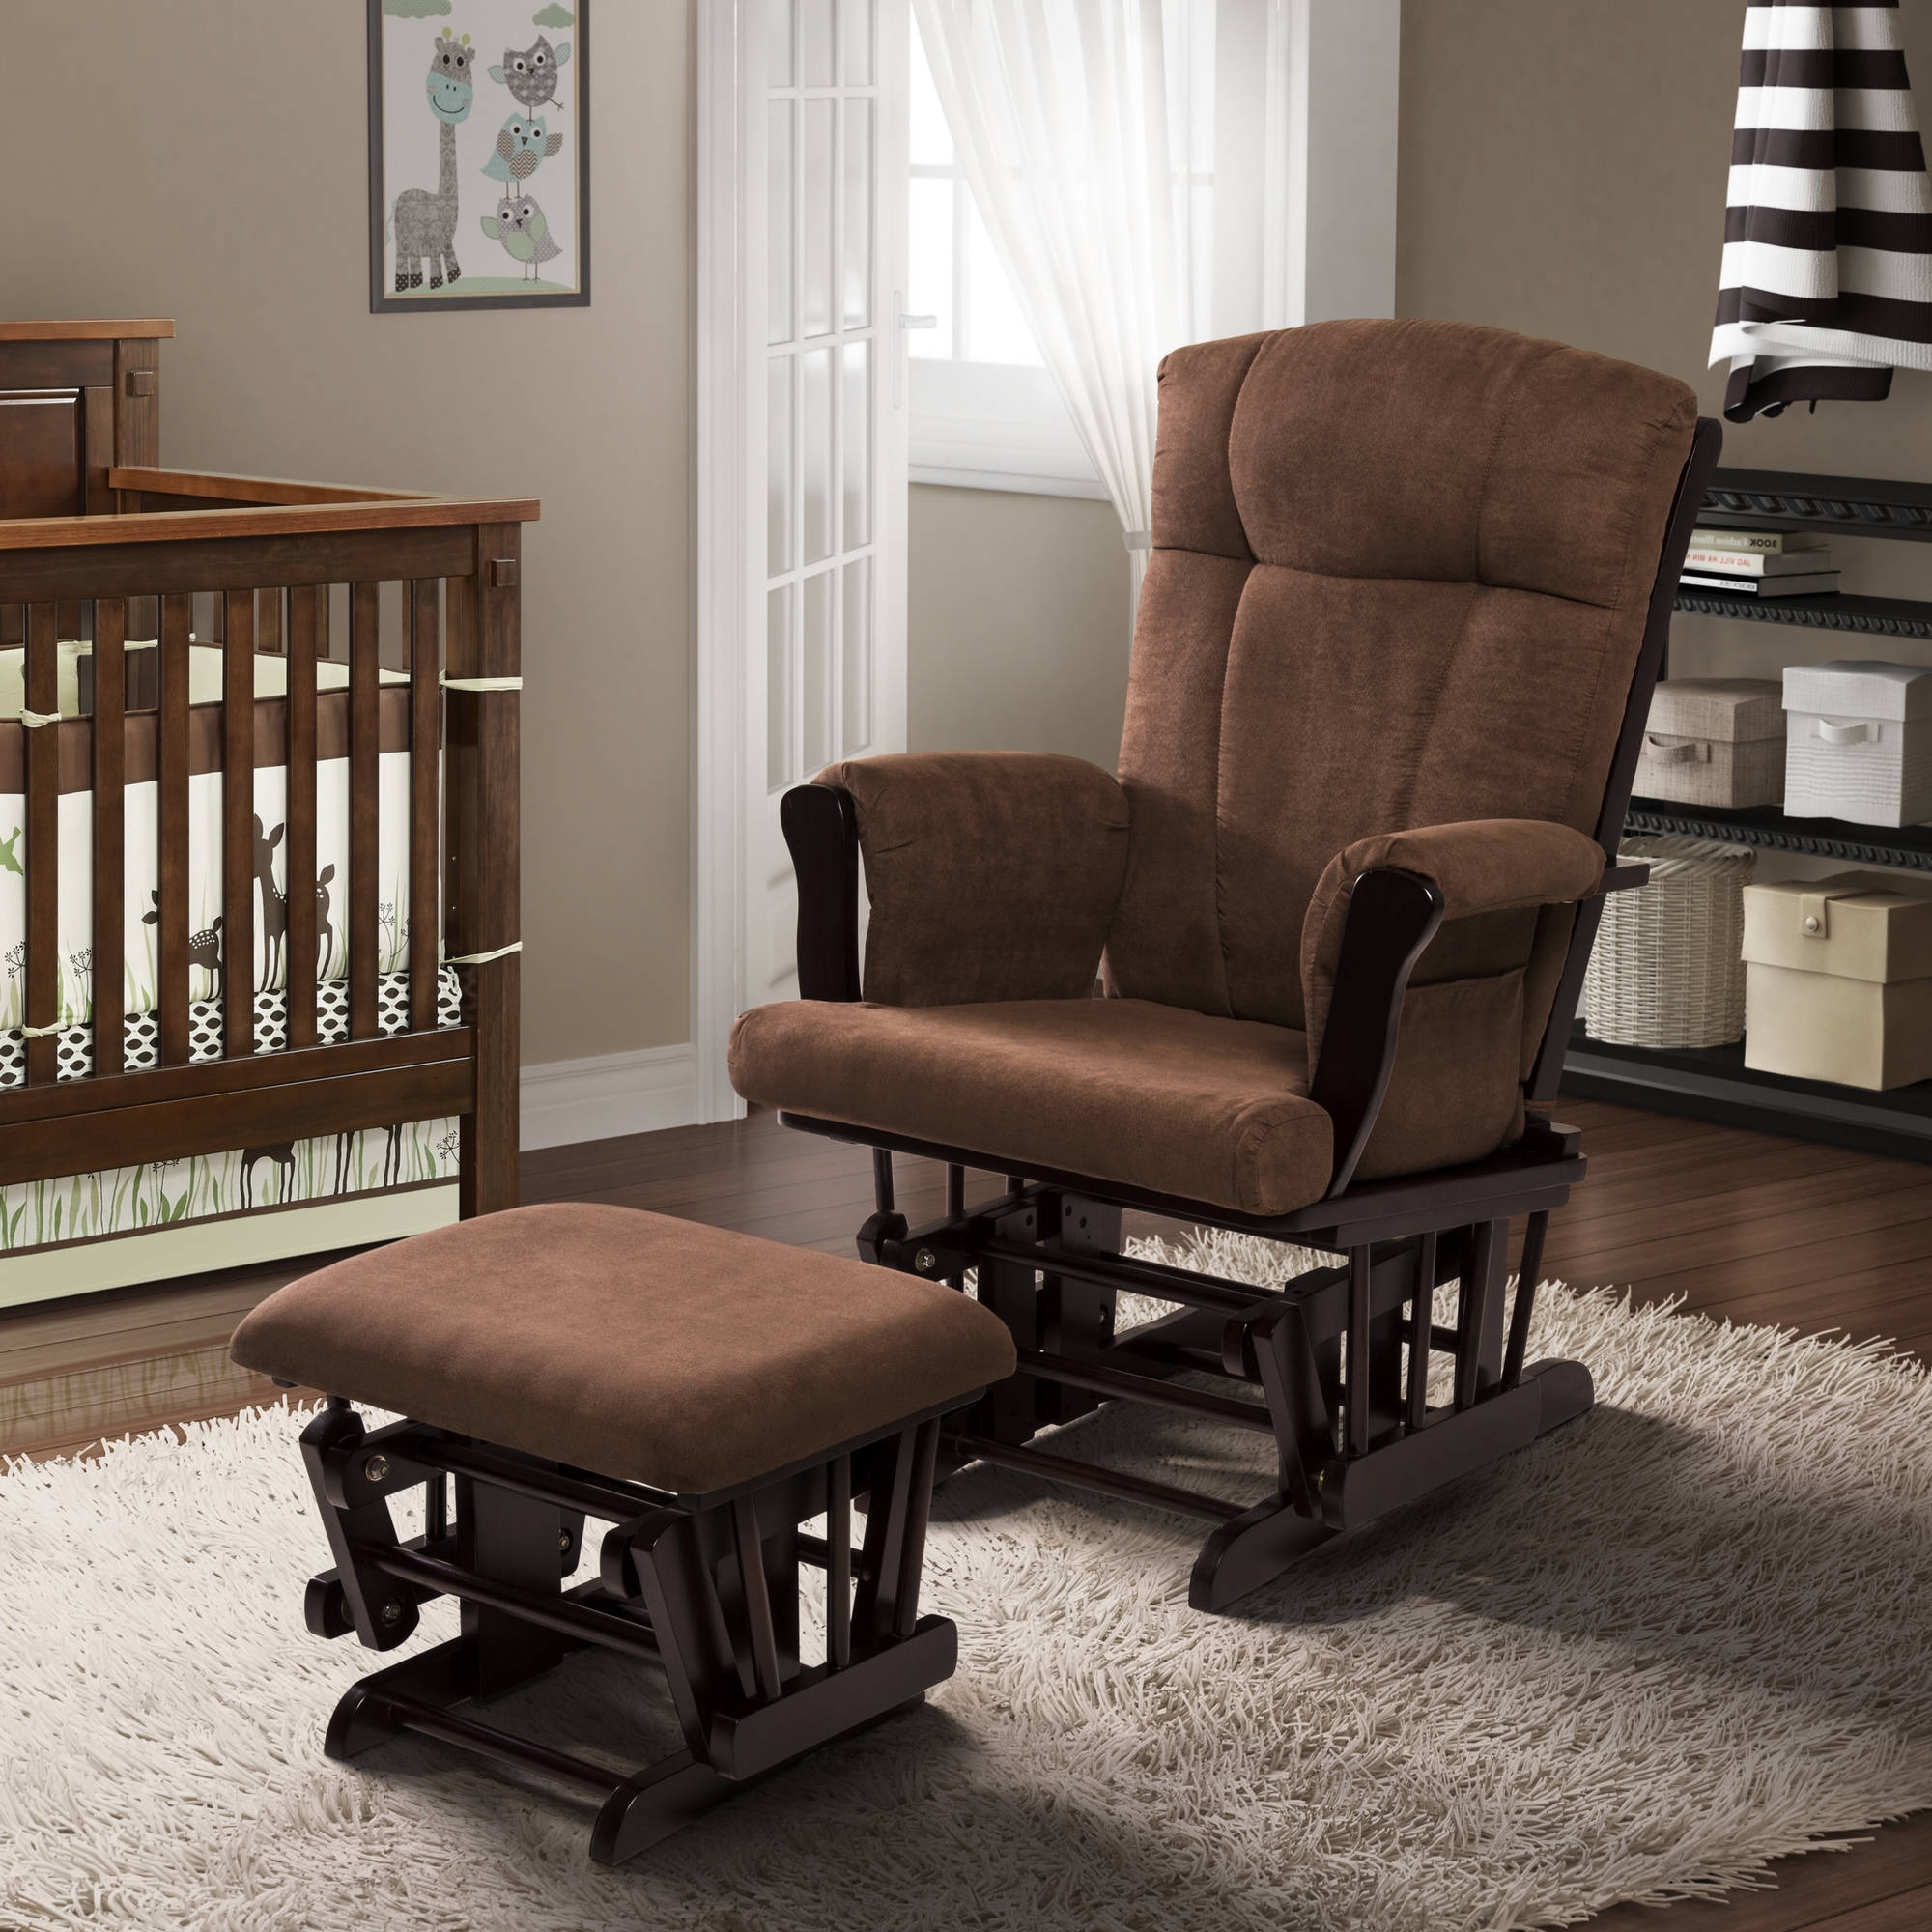 Popular Baby Relax Glider Rocker And Ottoman Espresso With Chocolate In Rocking Chairs At Walmart (View 11 of 20)